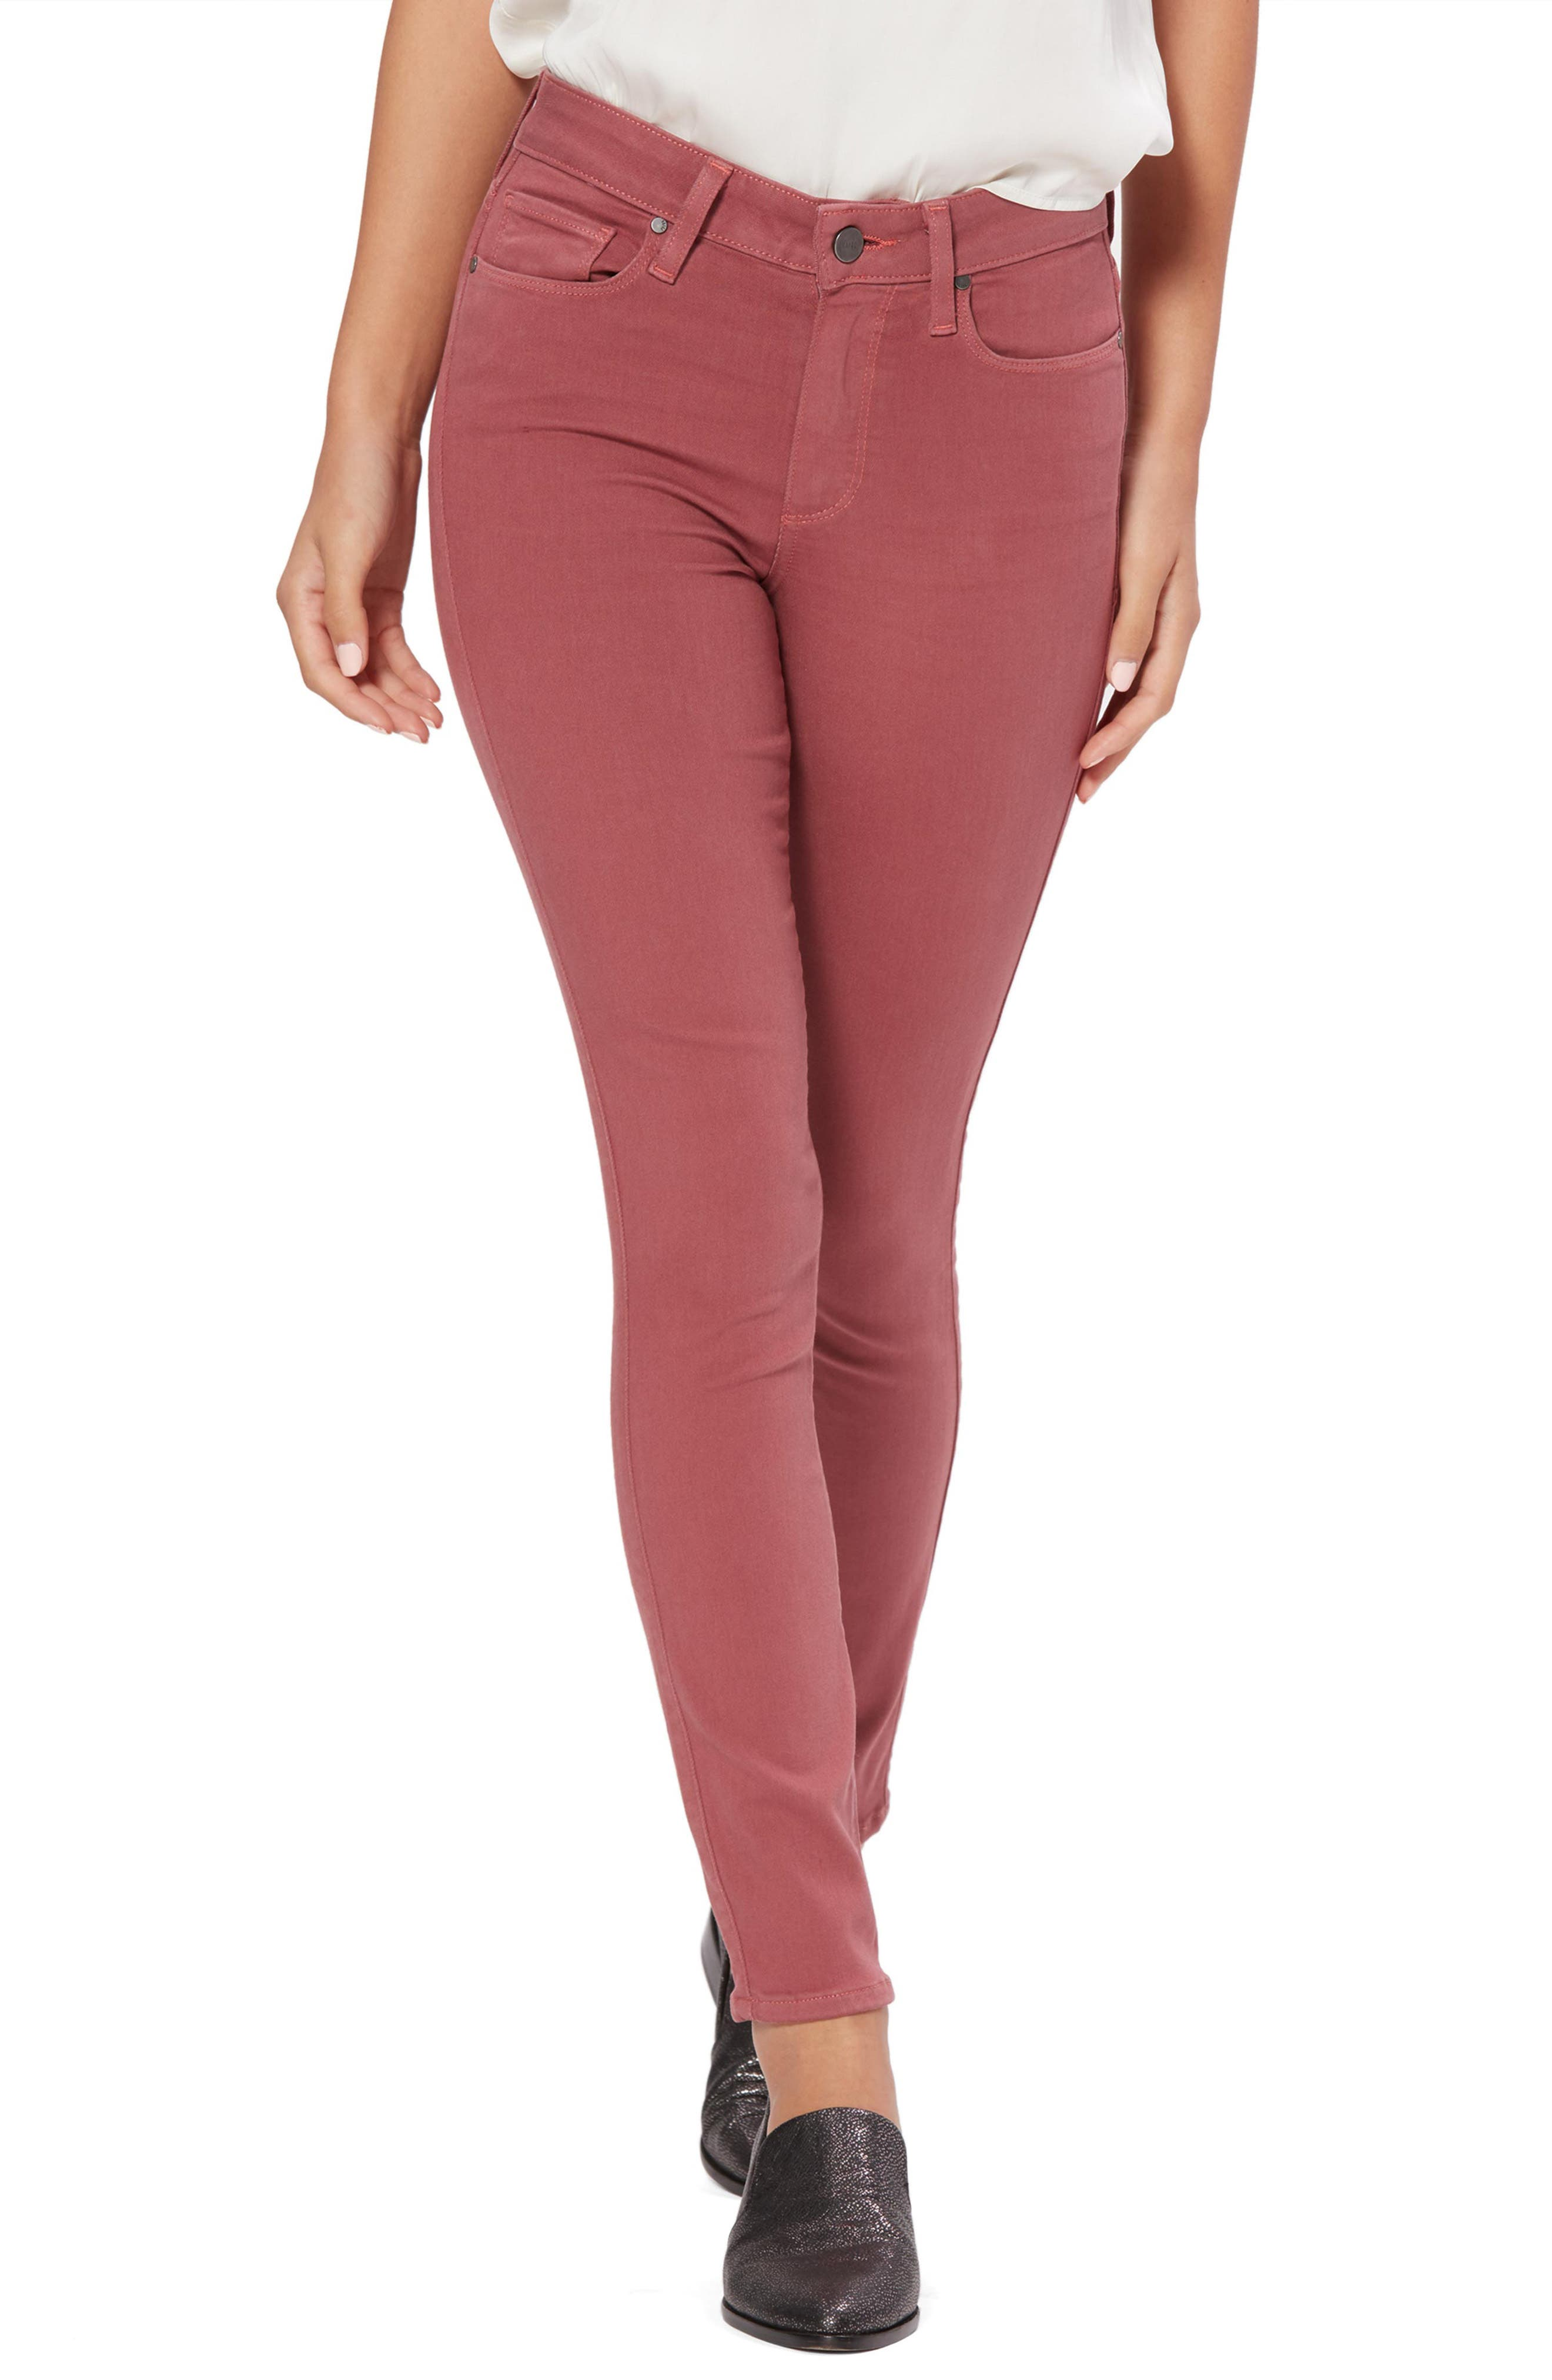 Paige TRANSCEND- HOXTON HIGH WAIST ANKLE SKINNY JEANS